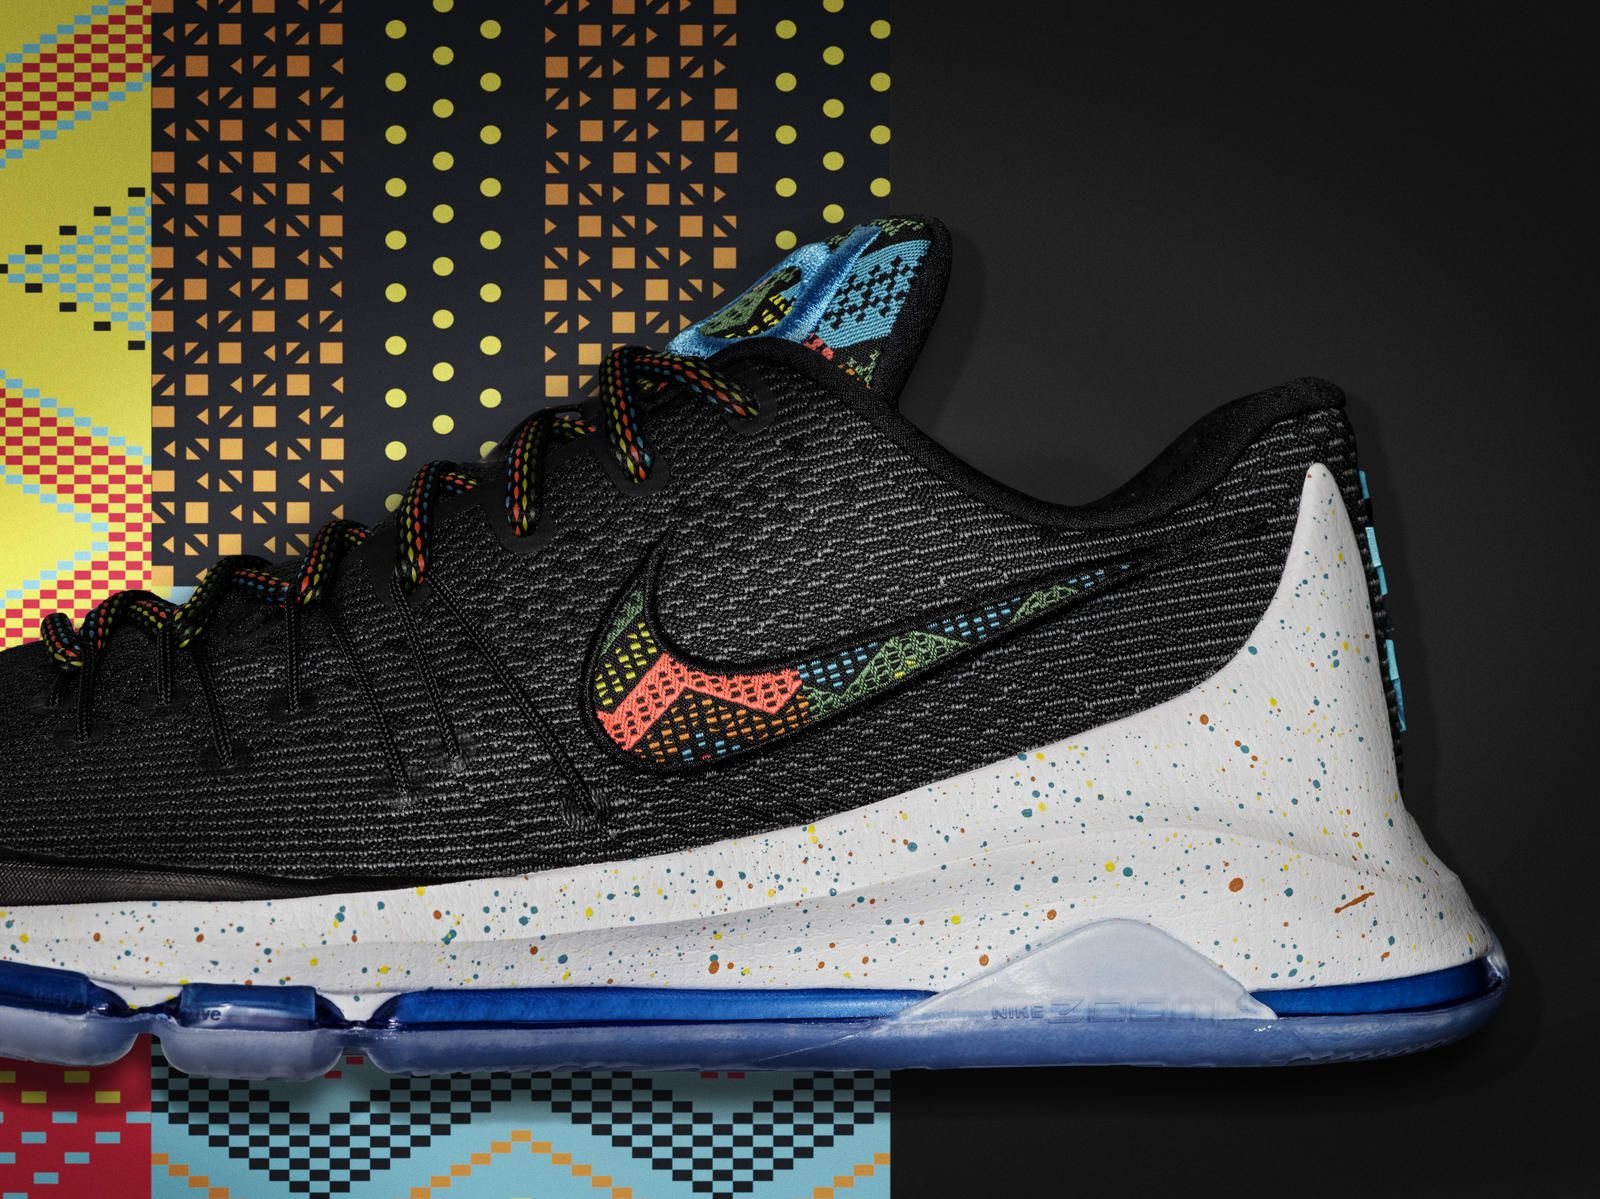 Nike News - 2016 Nike Black History Month Collection